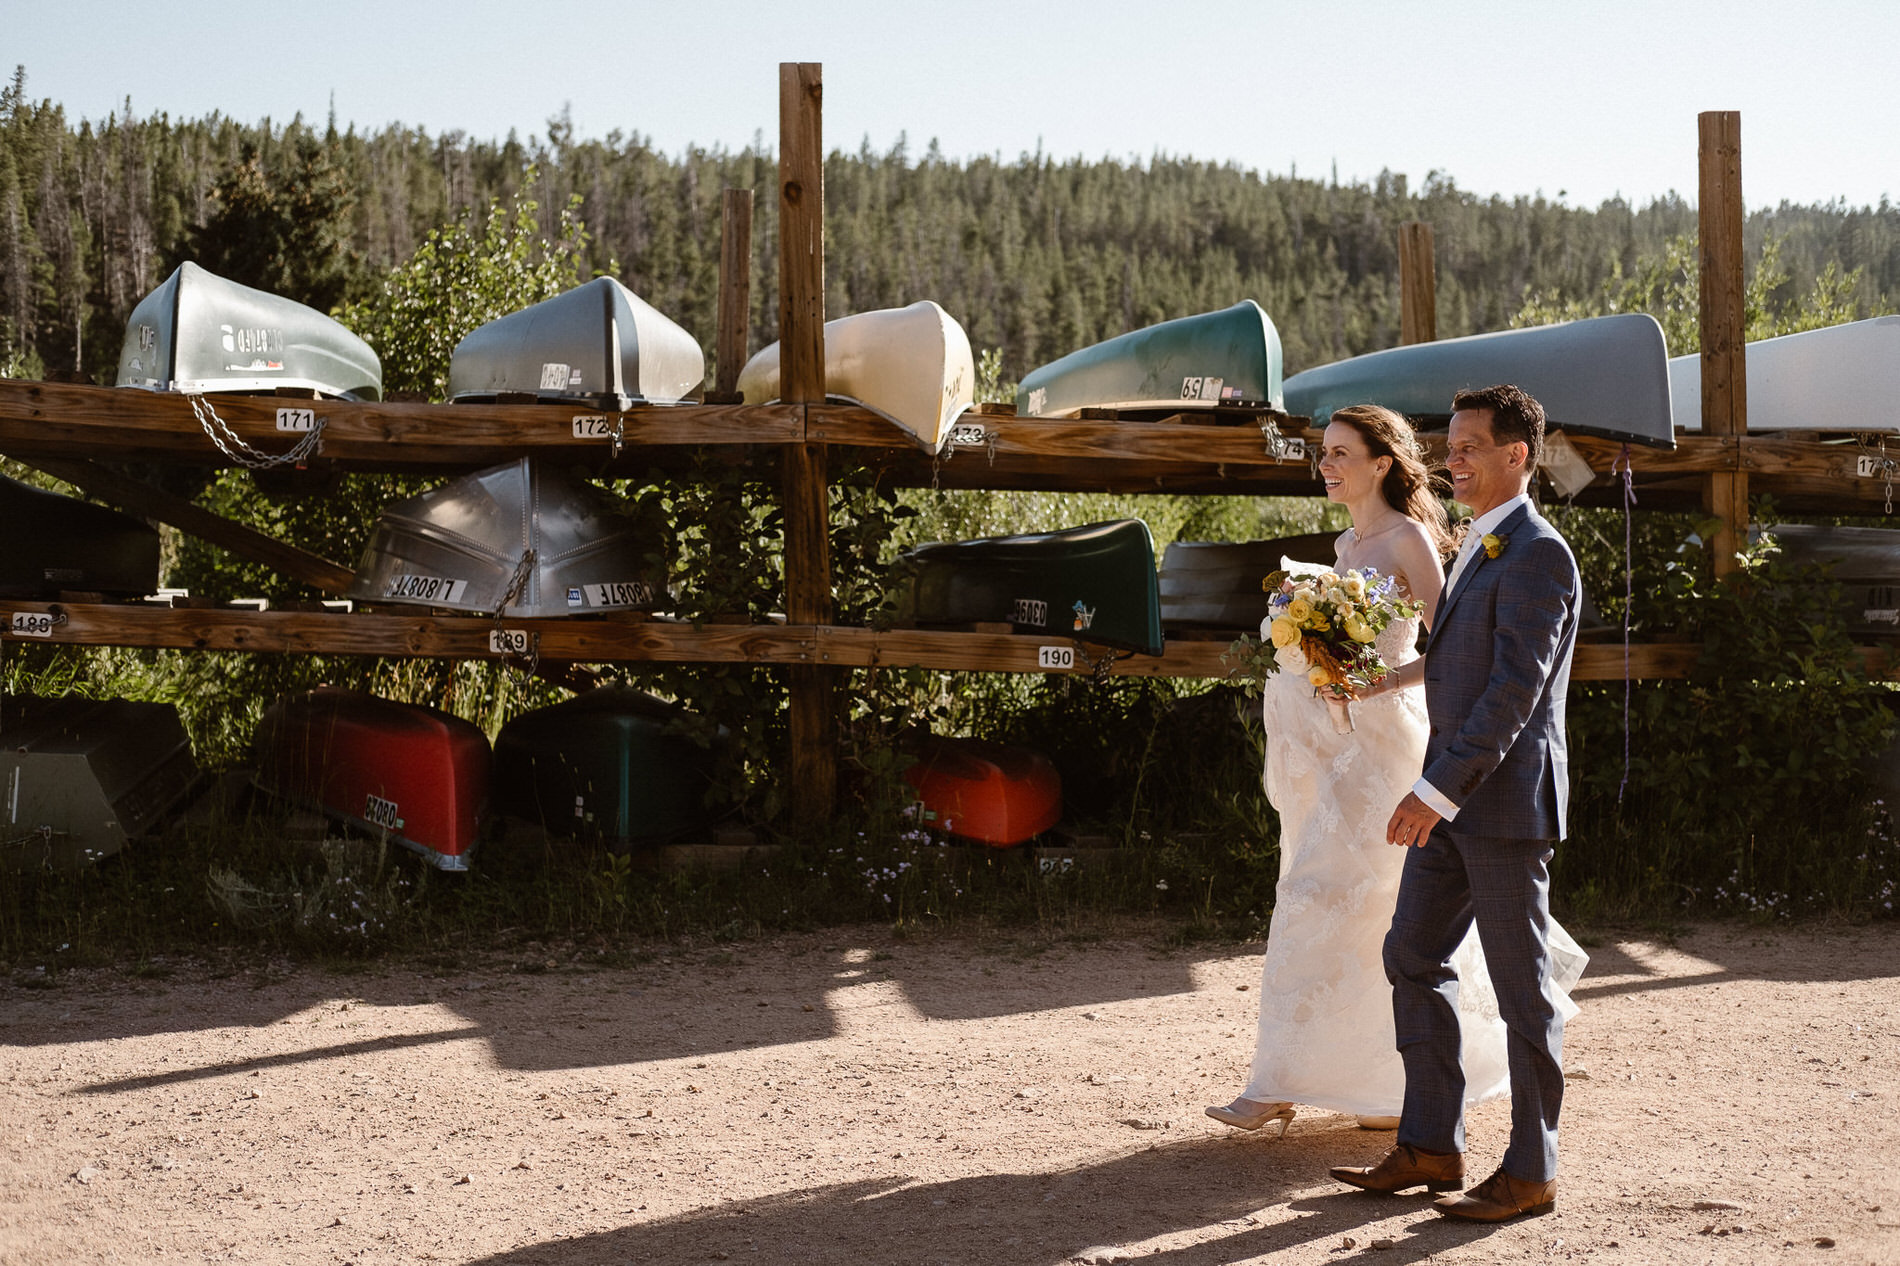 Bride and groom exploring the area at Red Feather Lakes, CO